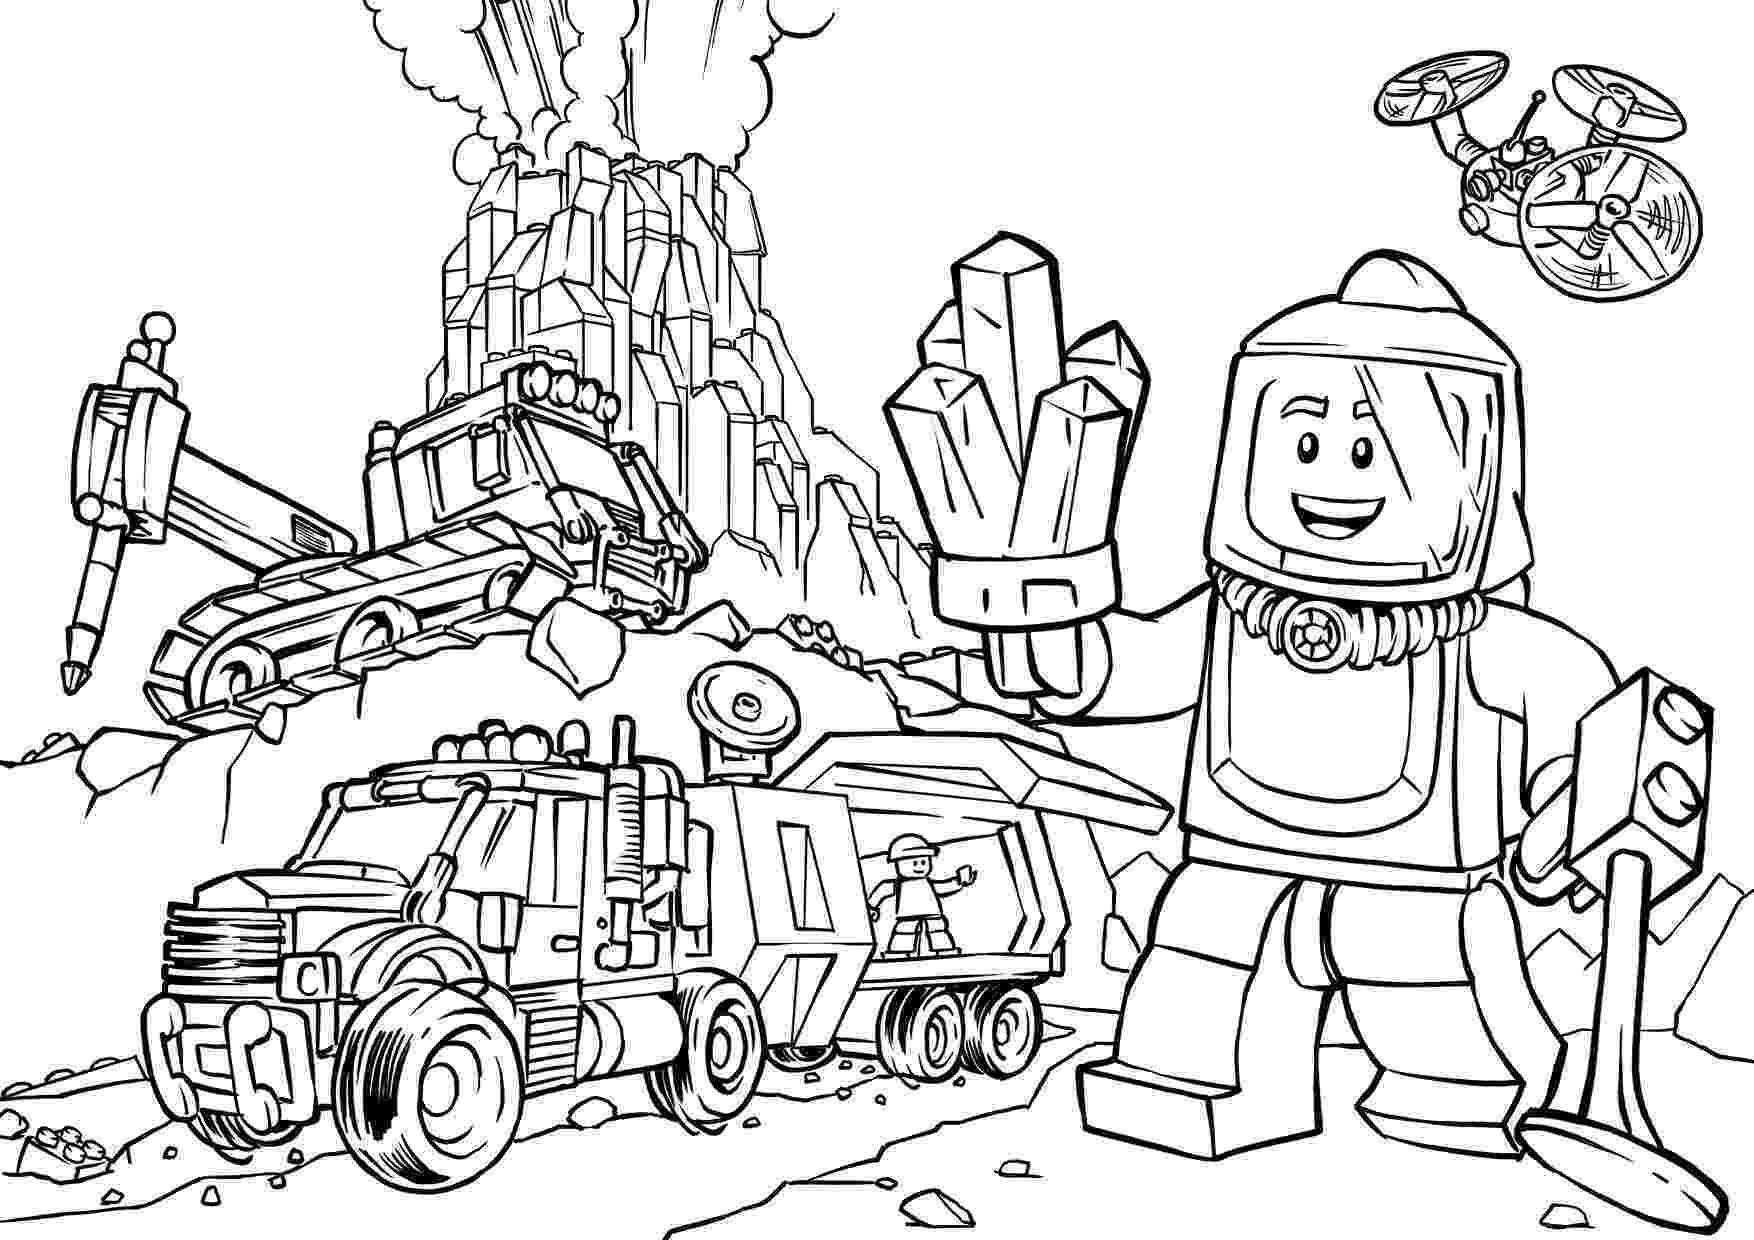 colouring pages lego star wars star wars lego coloring pages coloring pages pictures pages wars lego star colouring